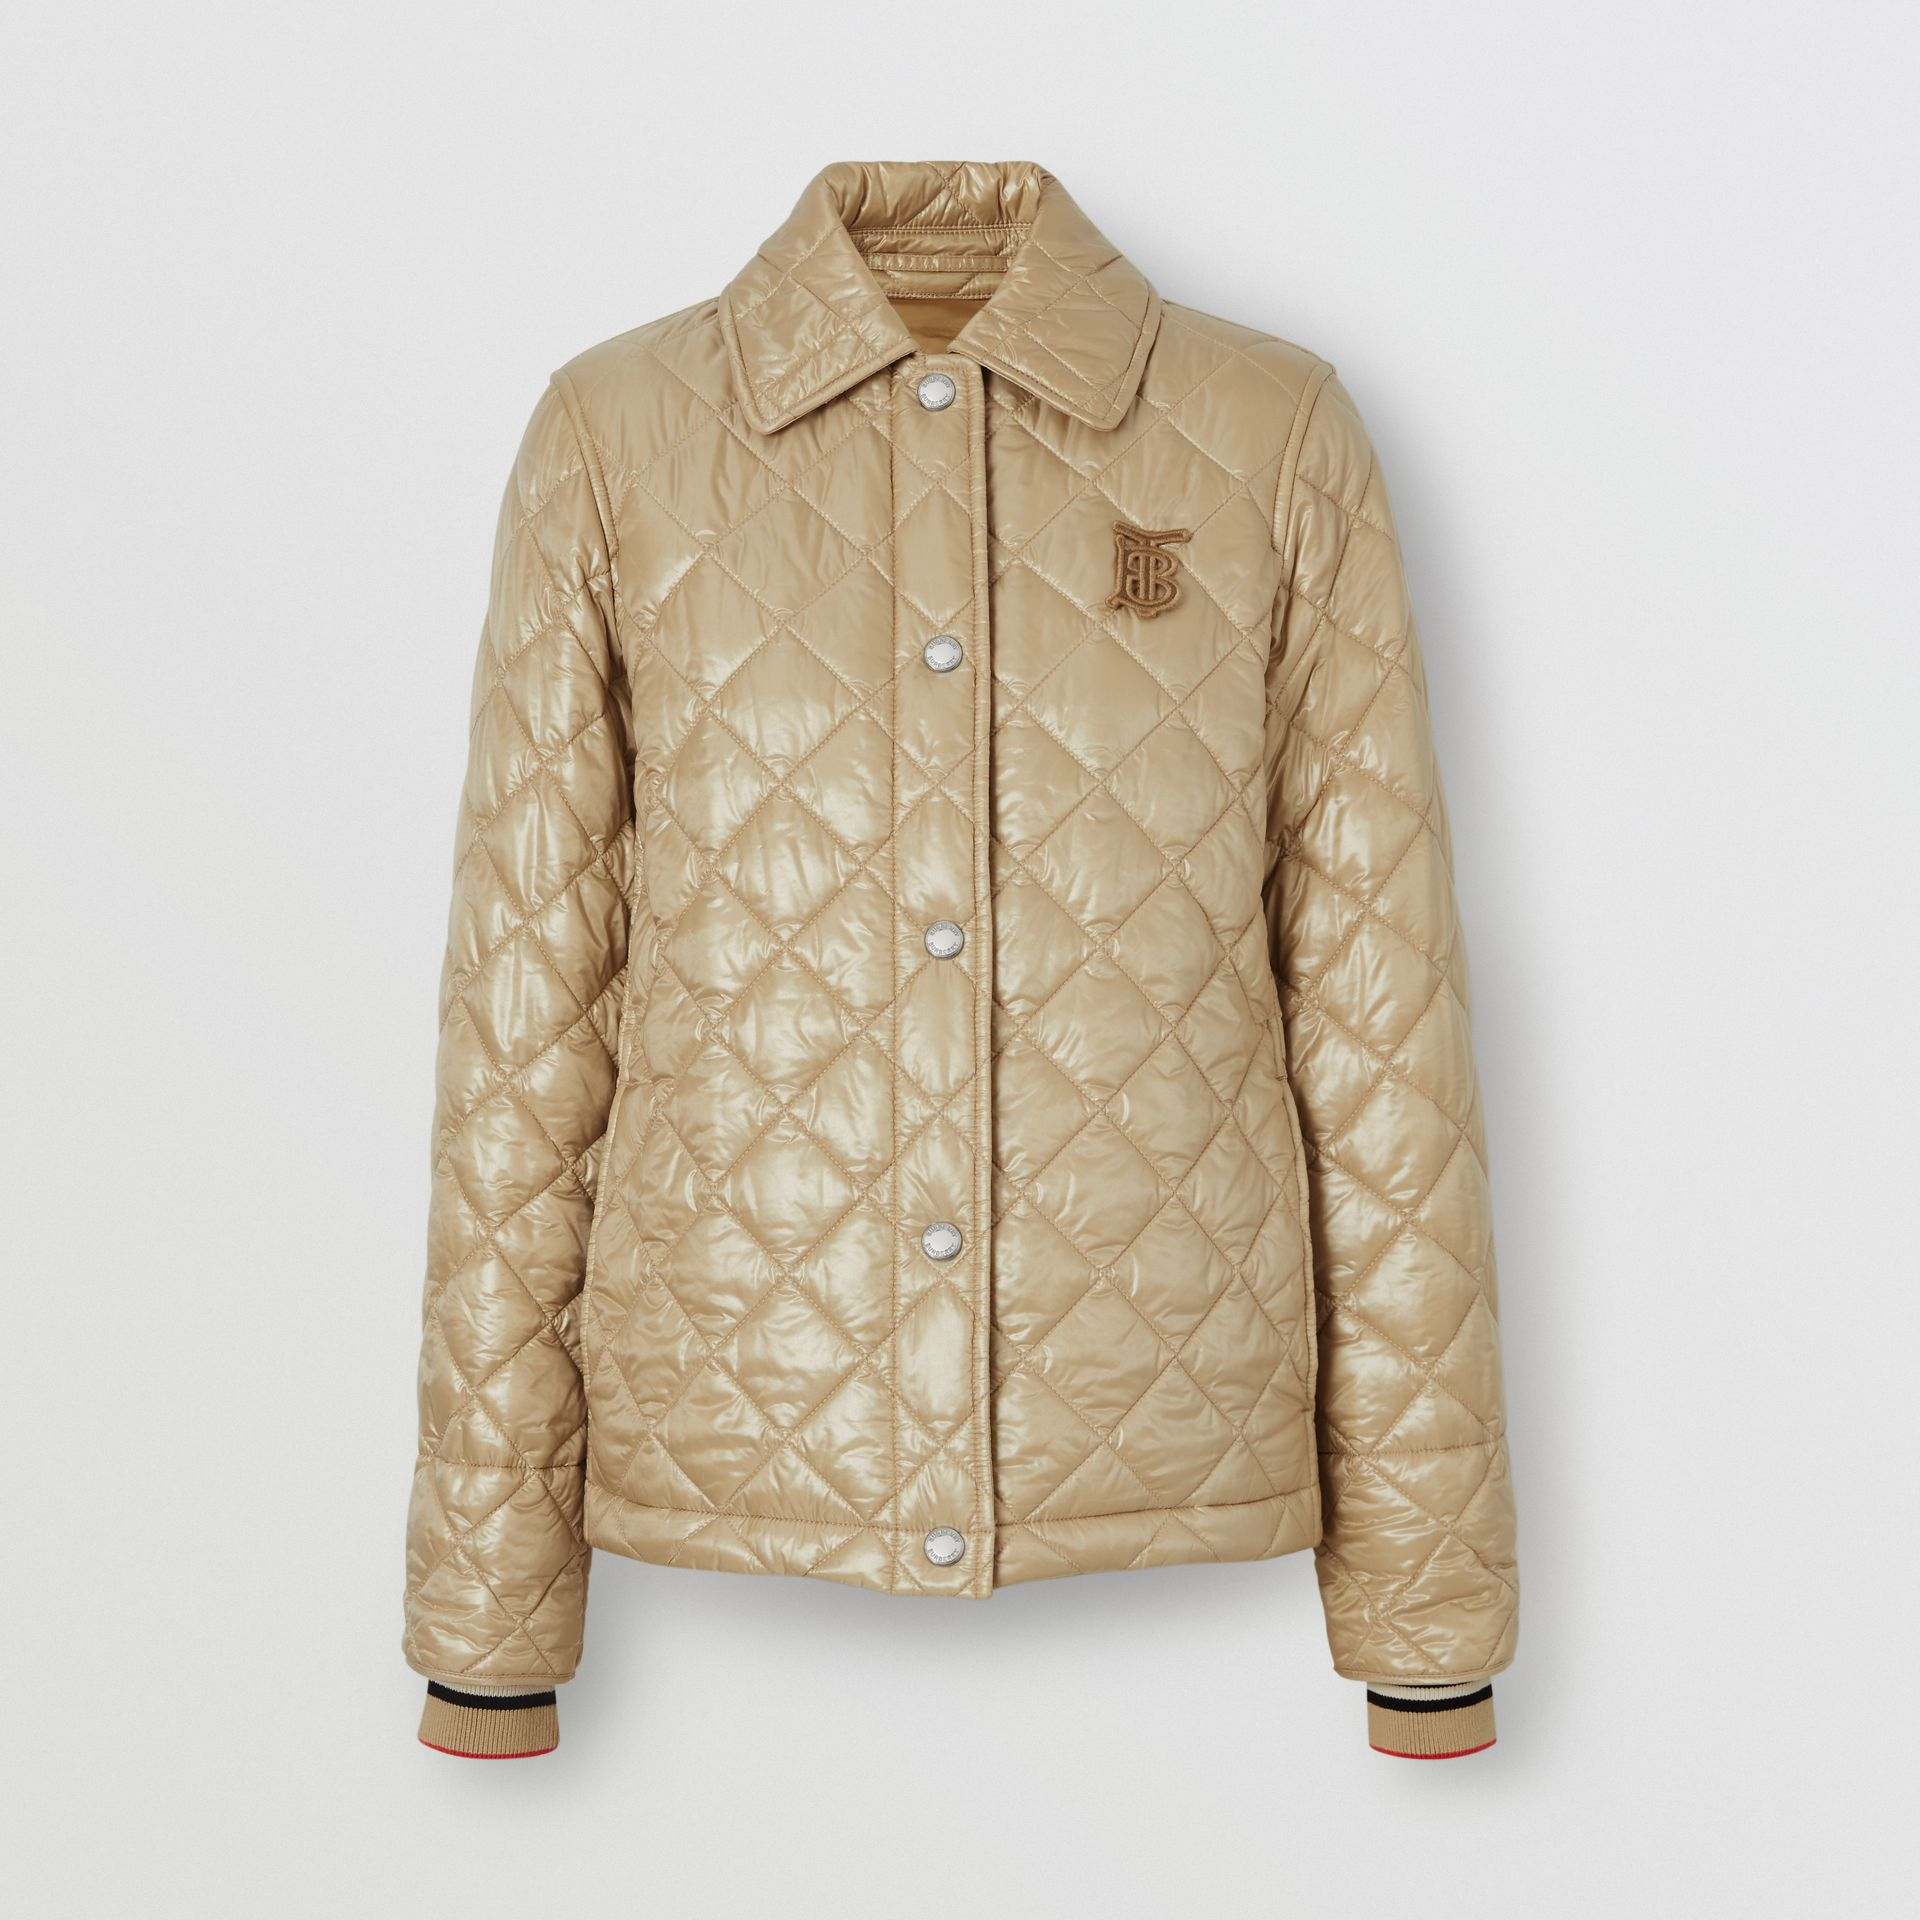 Monogram Motif Diamond Quilted Jacket in Honey - Women | Burberry - gallery image 3